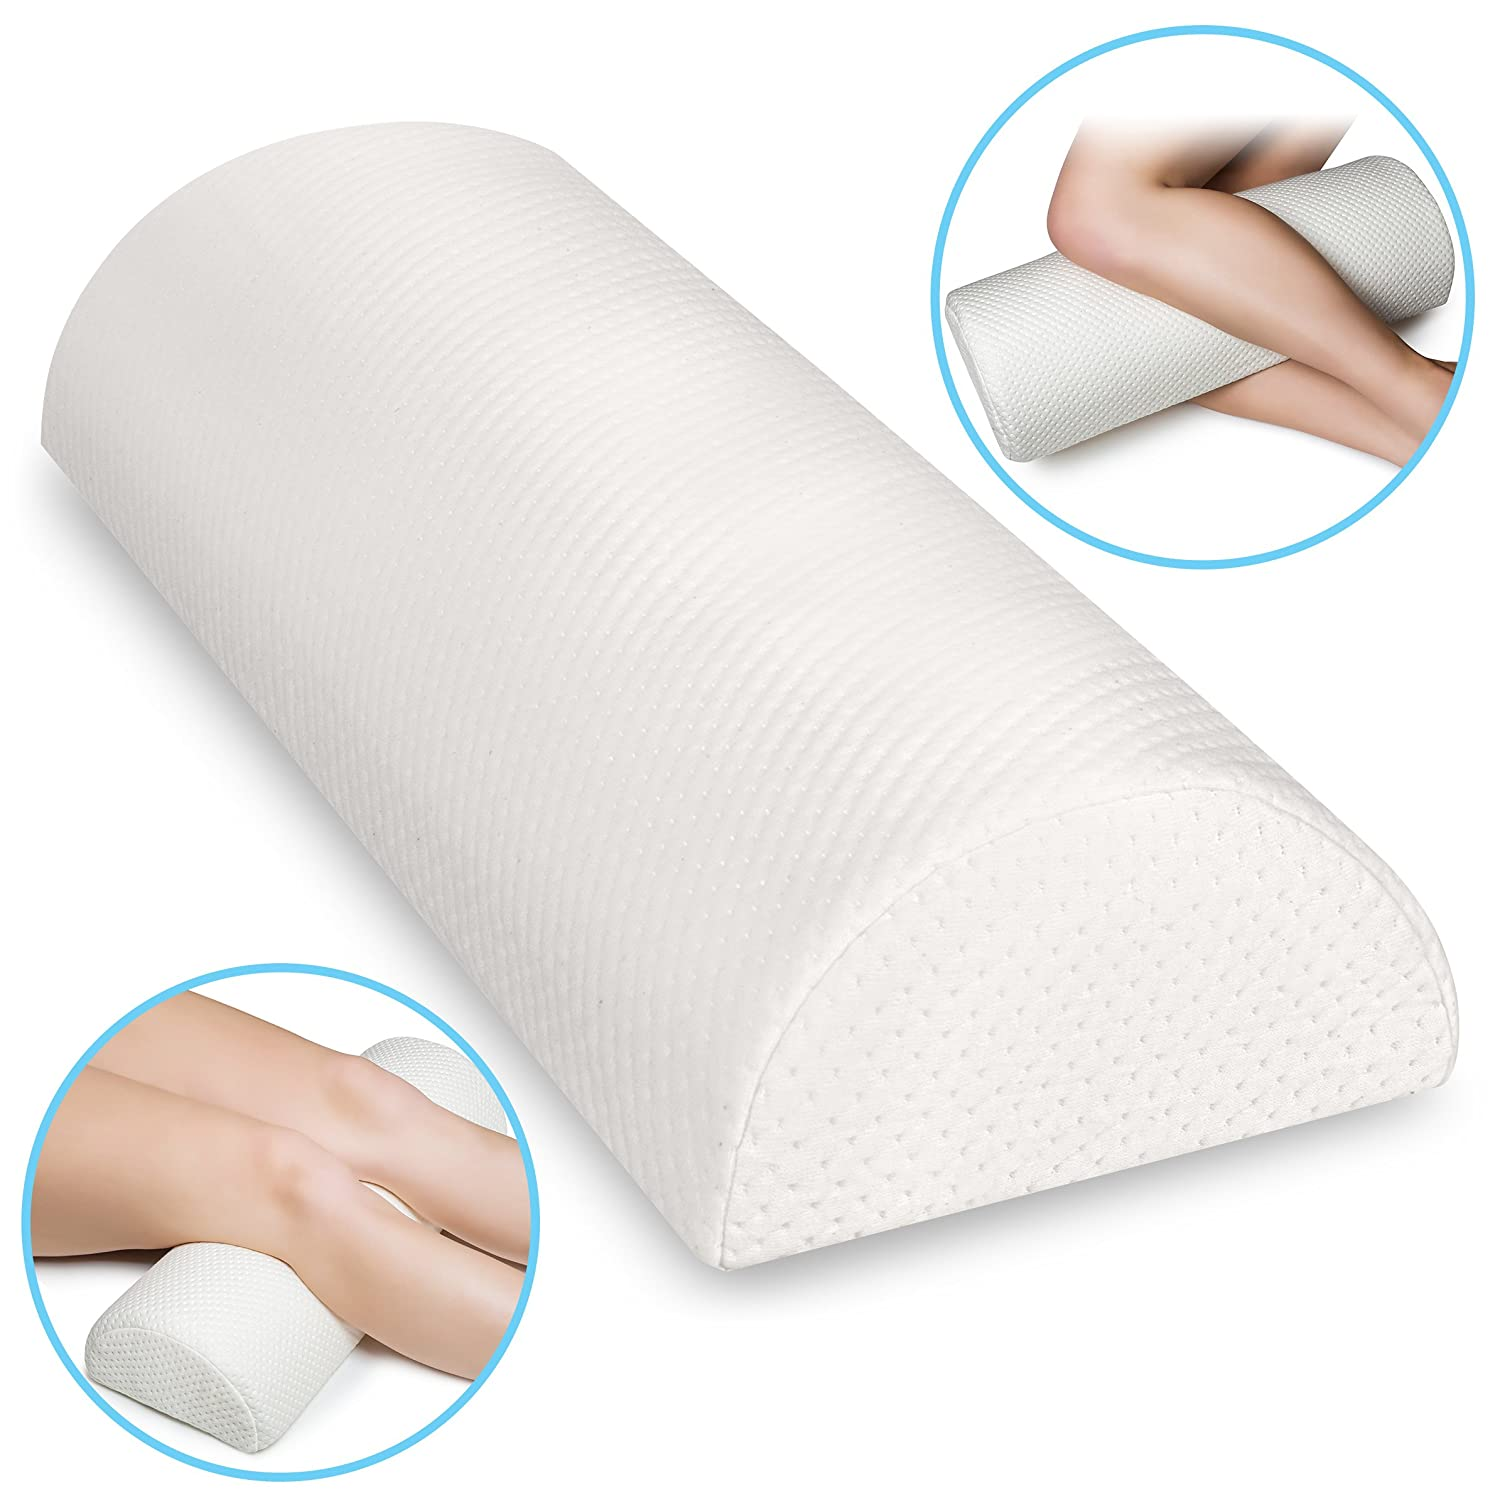 amazon com back pain relief memory foam pillow half moon bolster